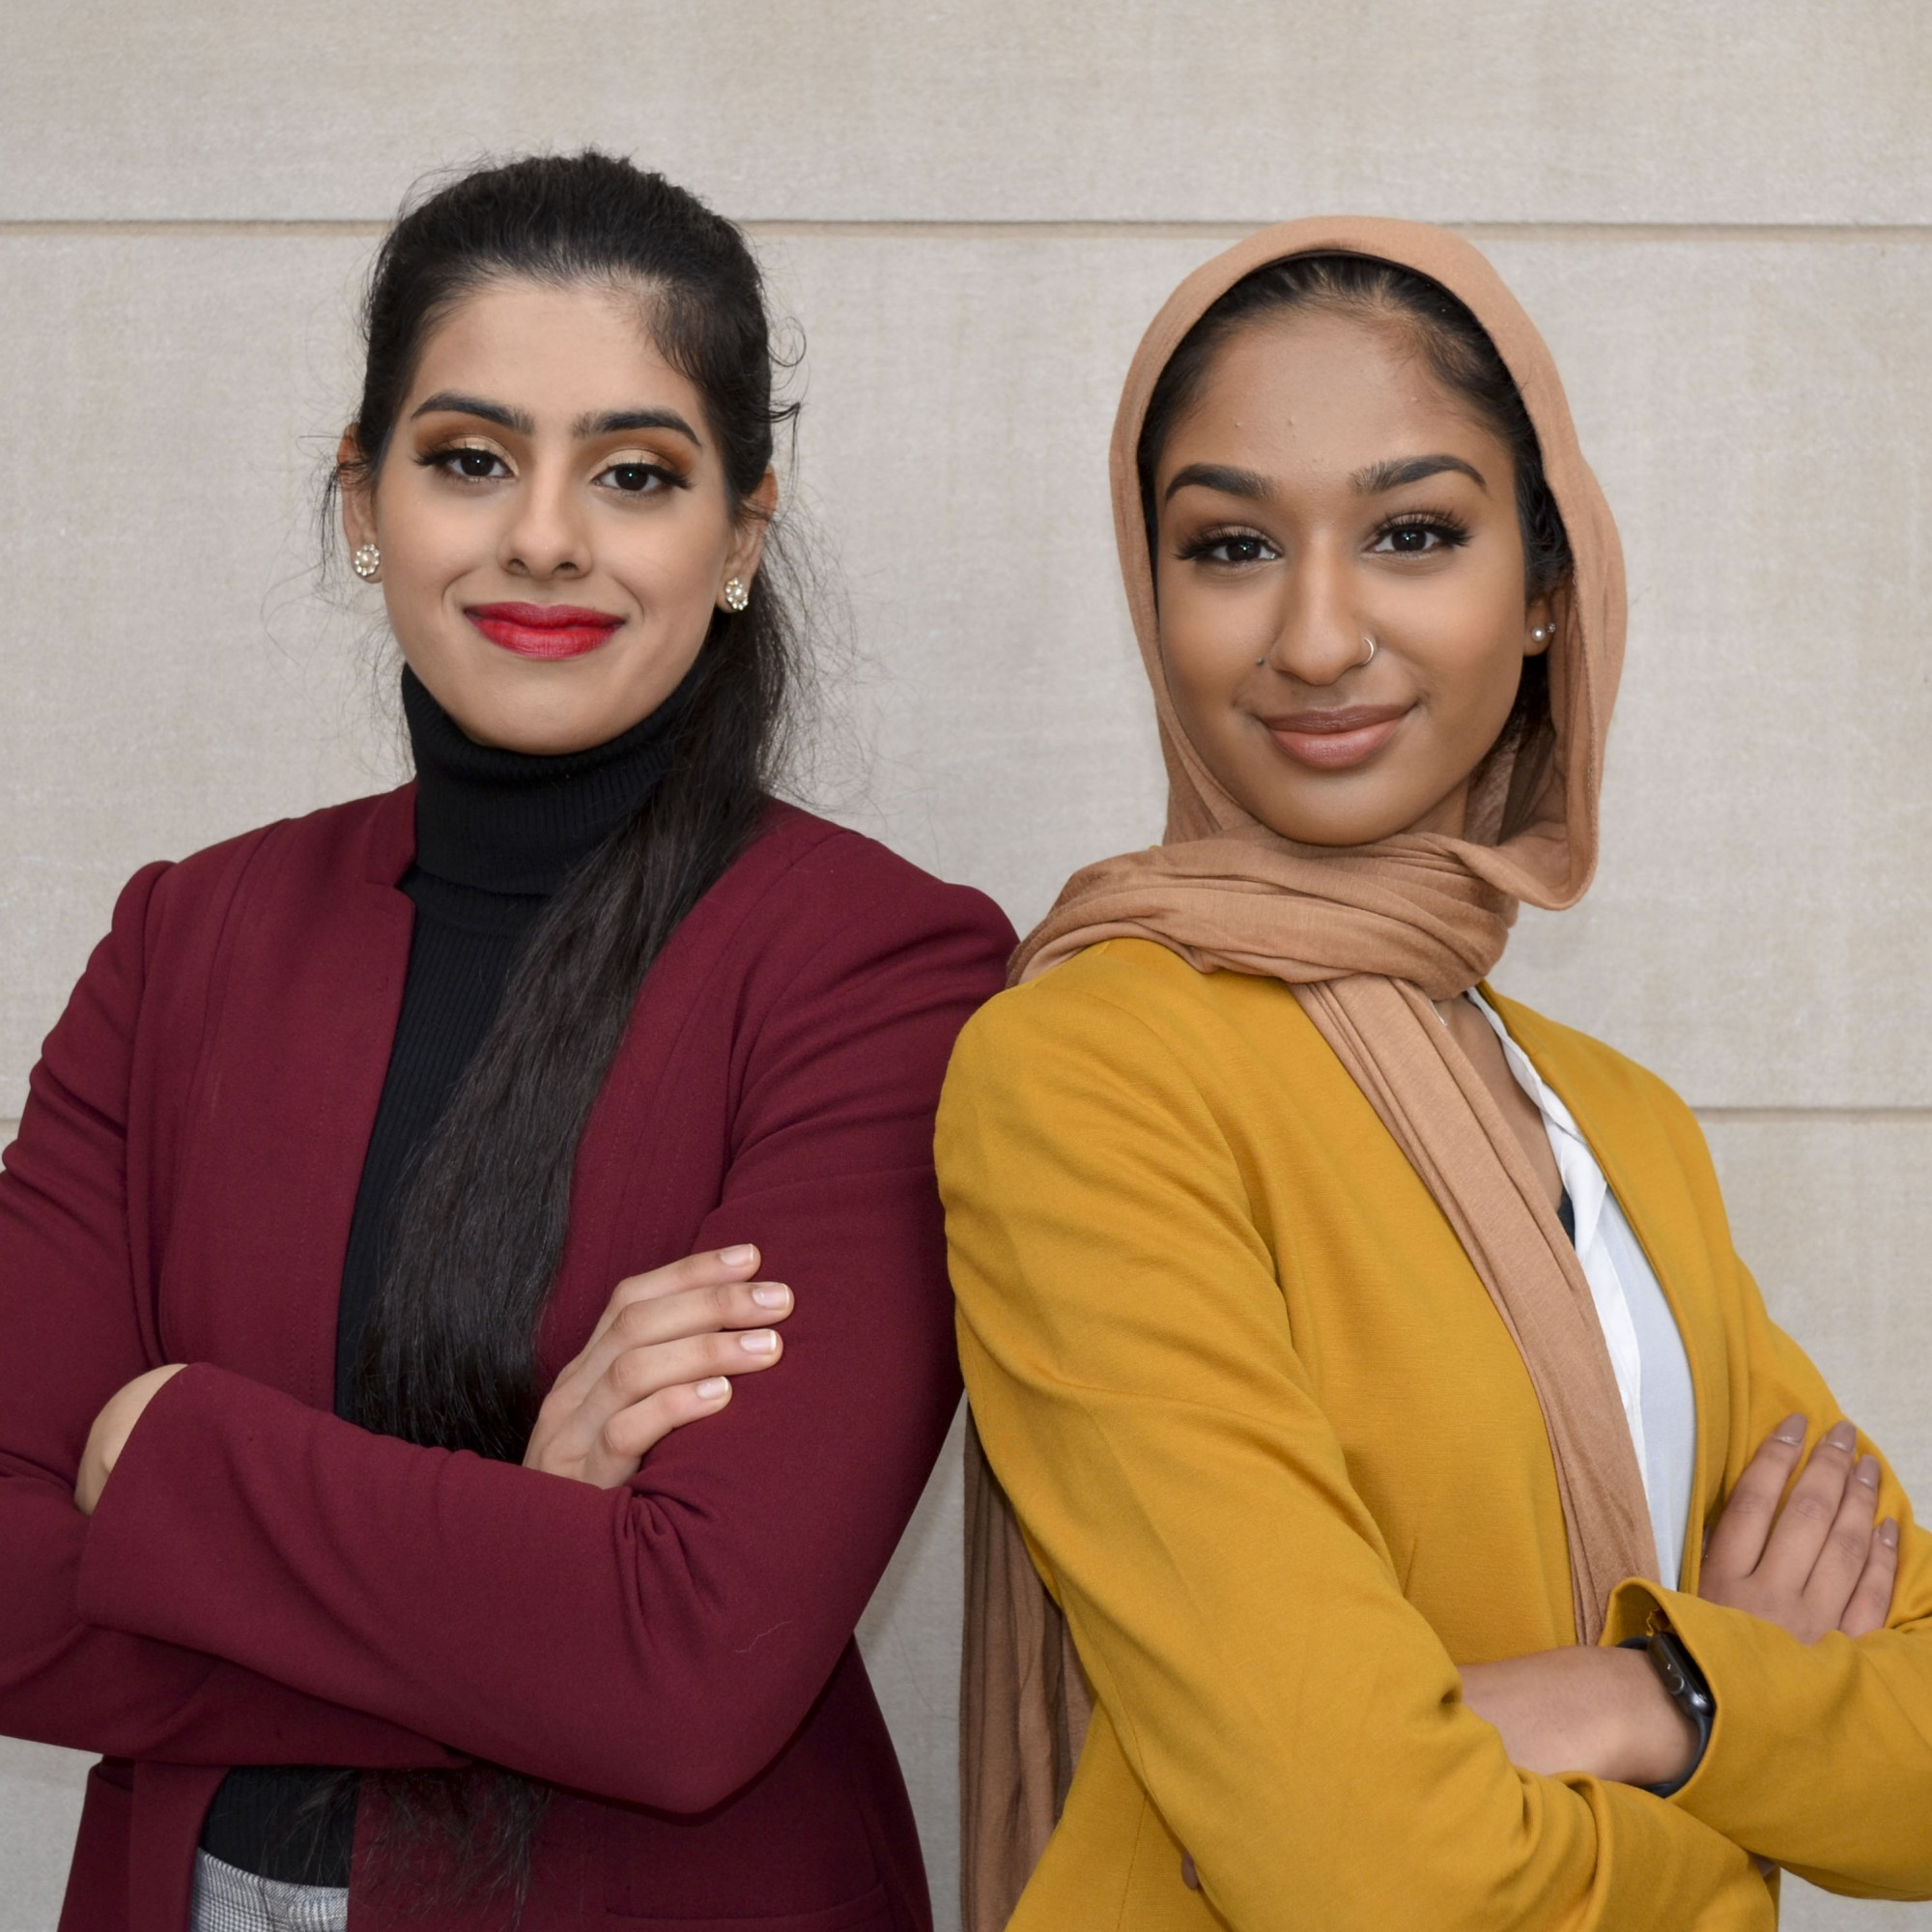 Presidential candidate Gurtaran Johal, left, and vice presidential candidate Arshia Hussain, right. Courtesy of the candidates.